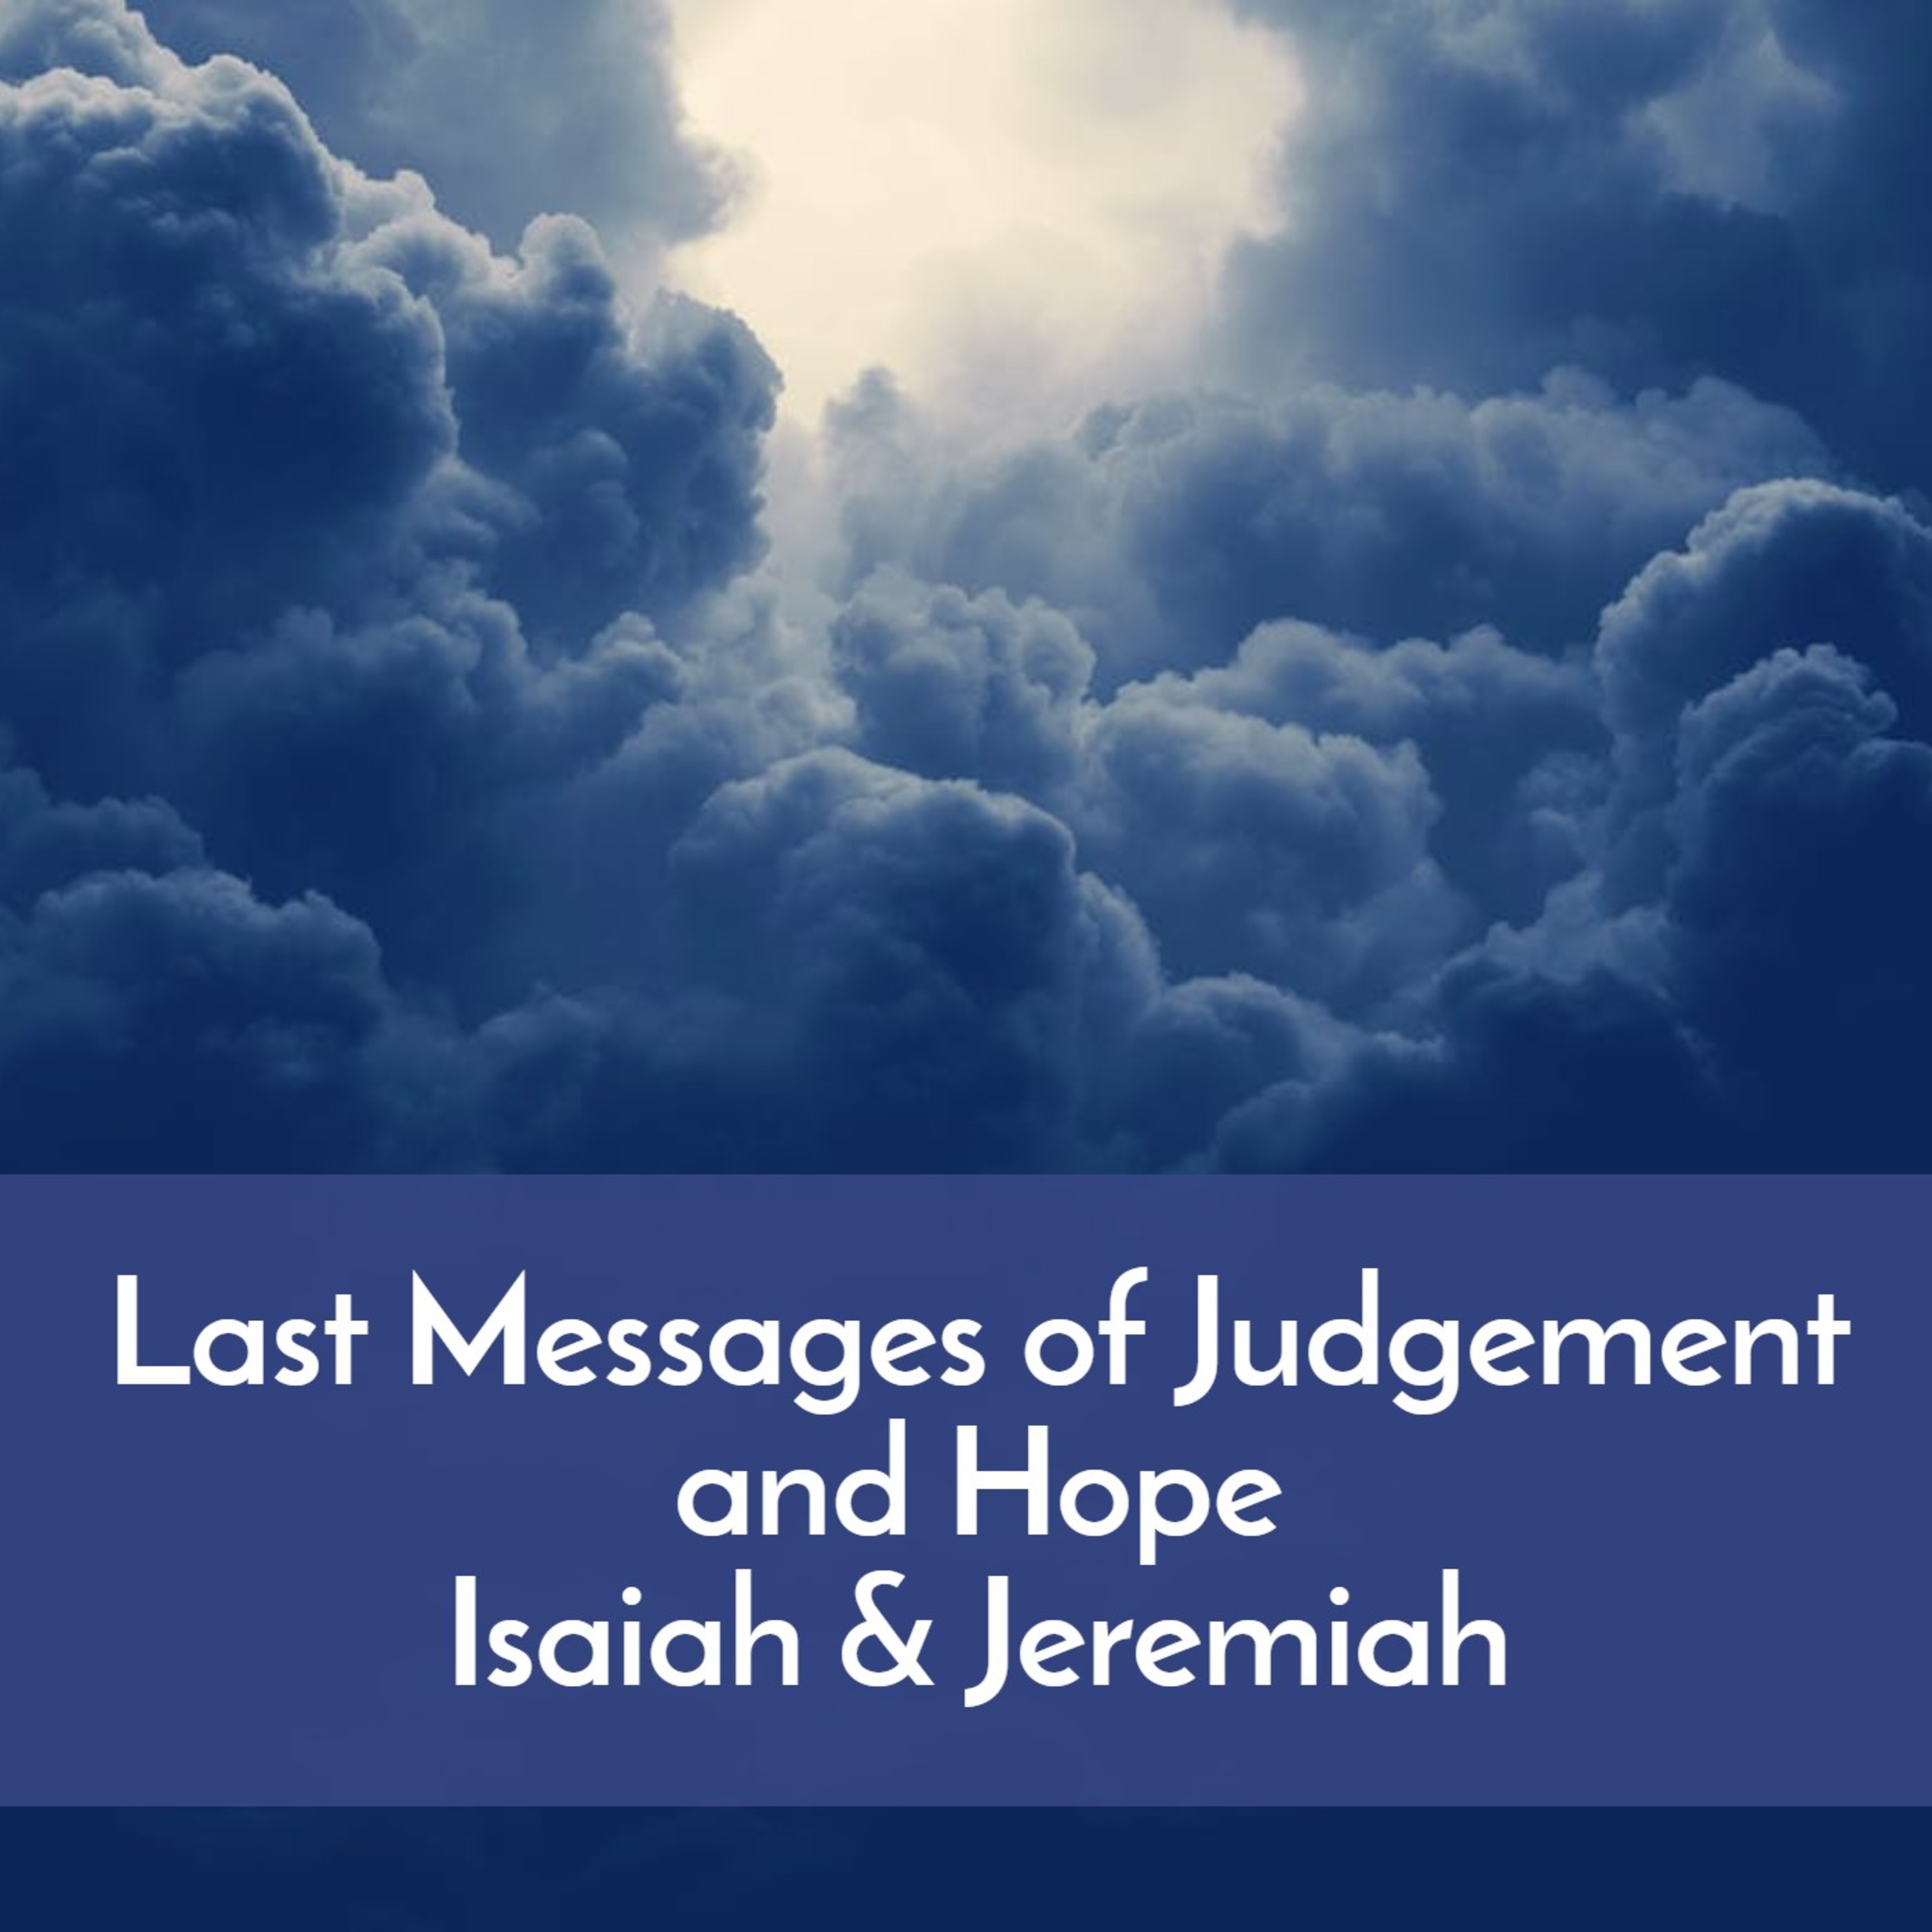 #45 Last messages of judgment and hope--Isaiah & Jeremiah